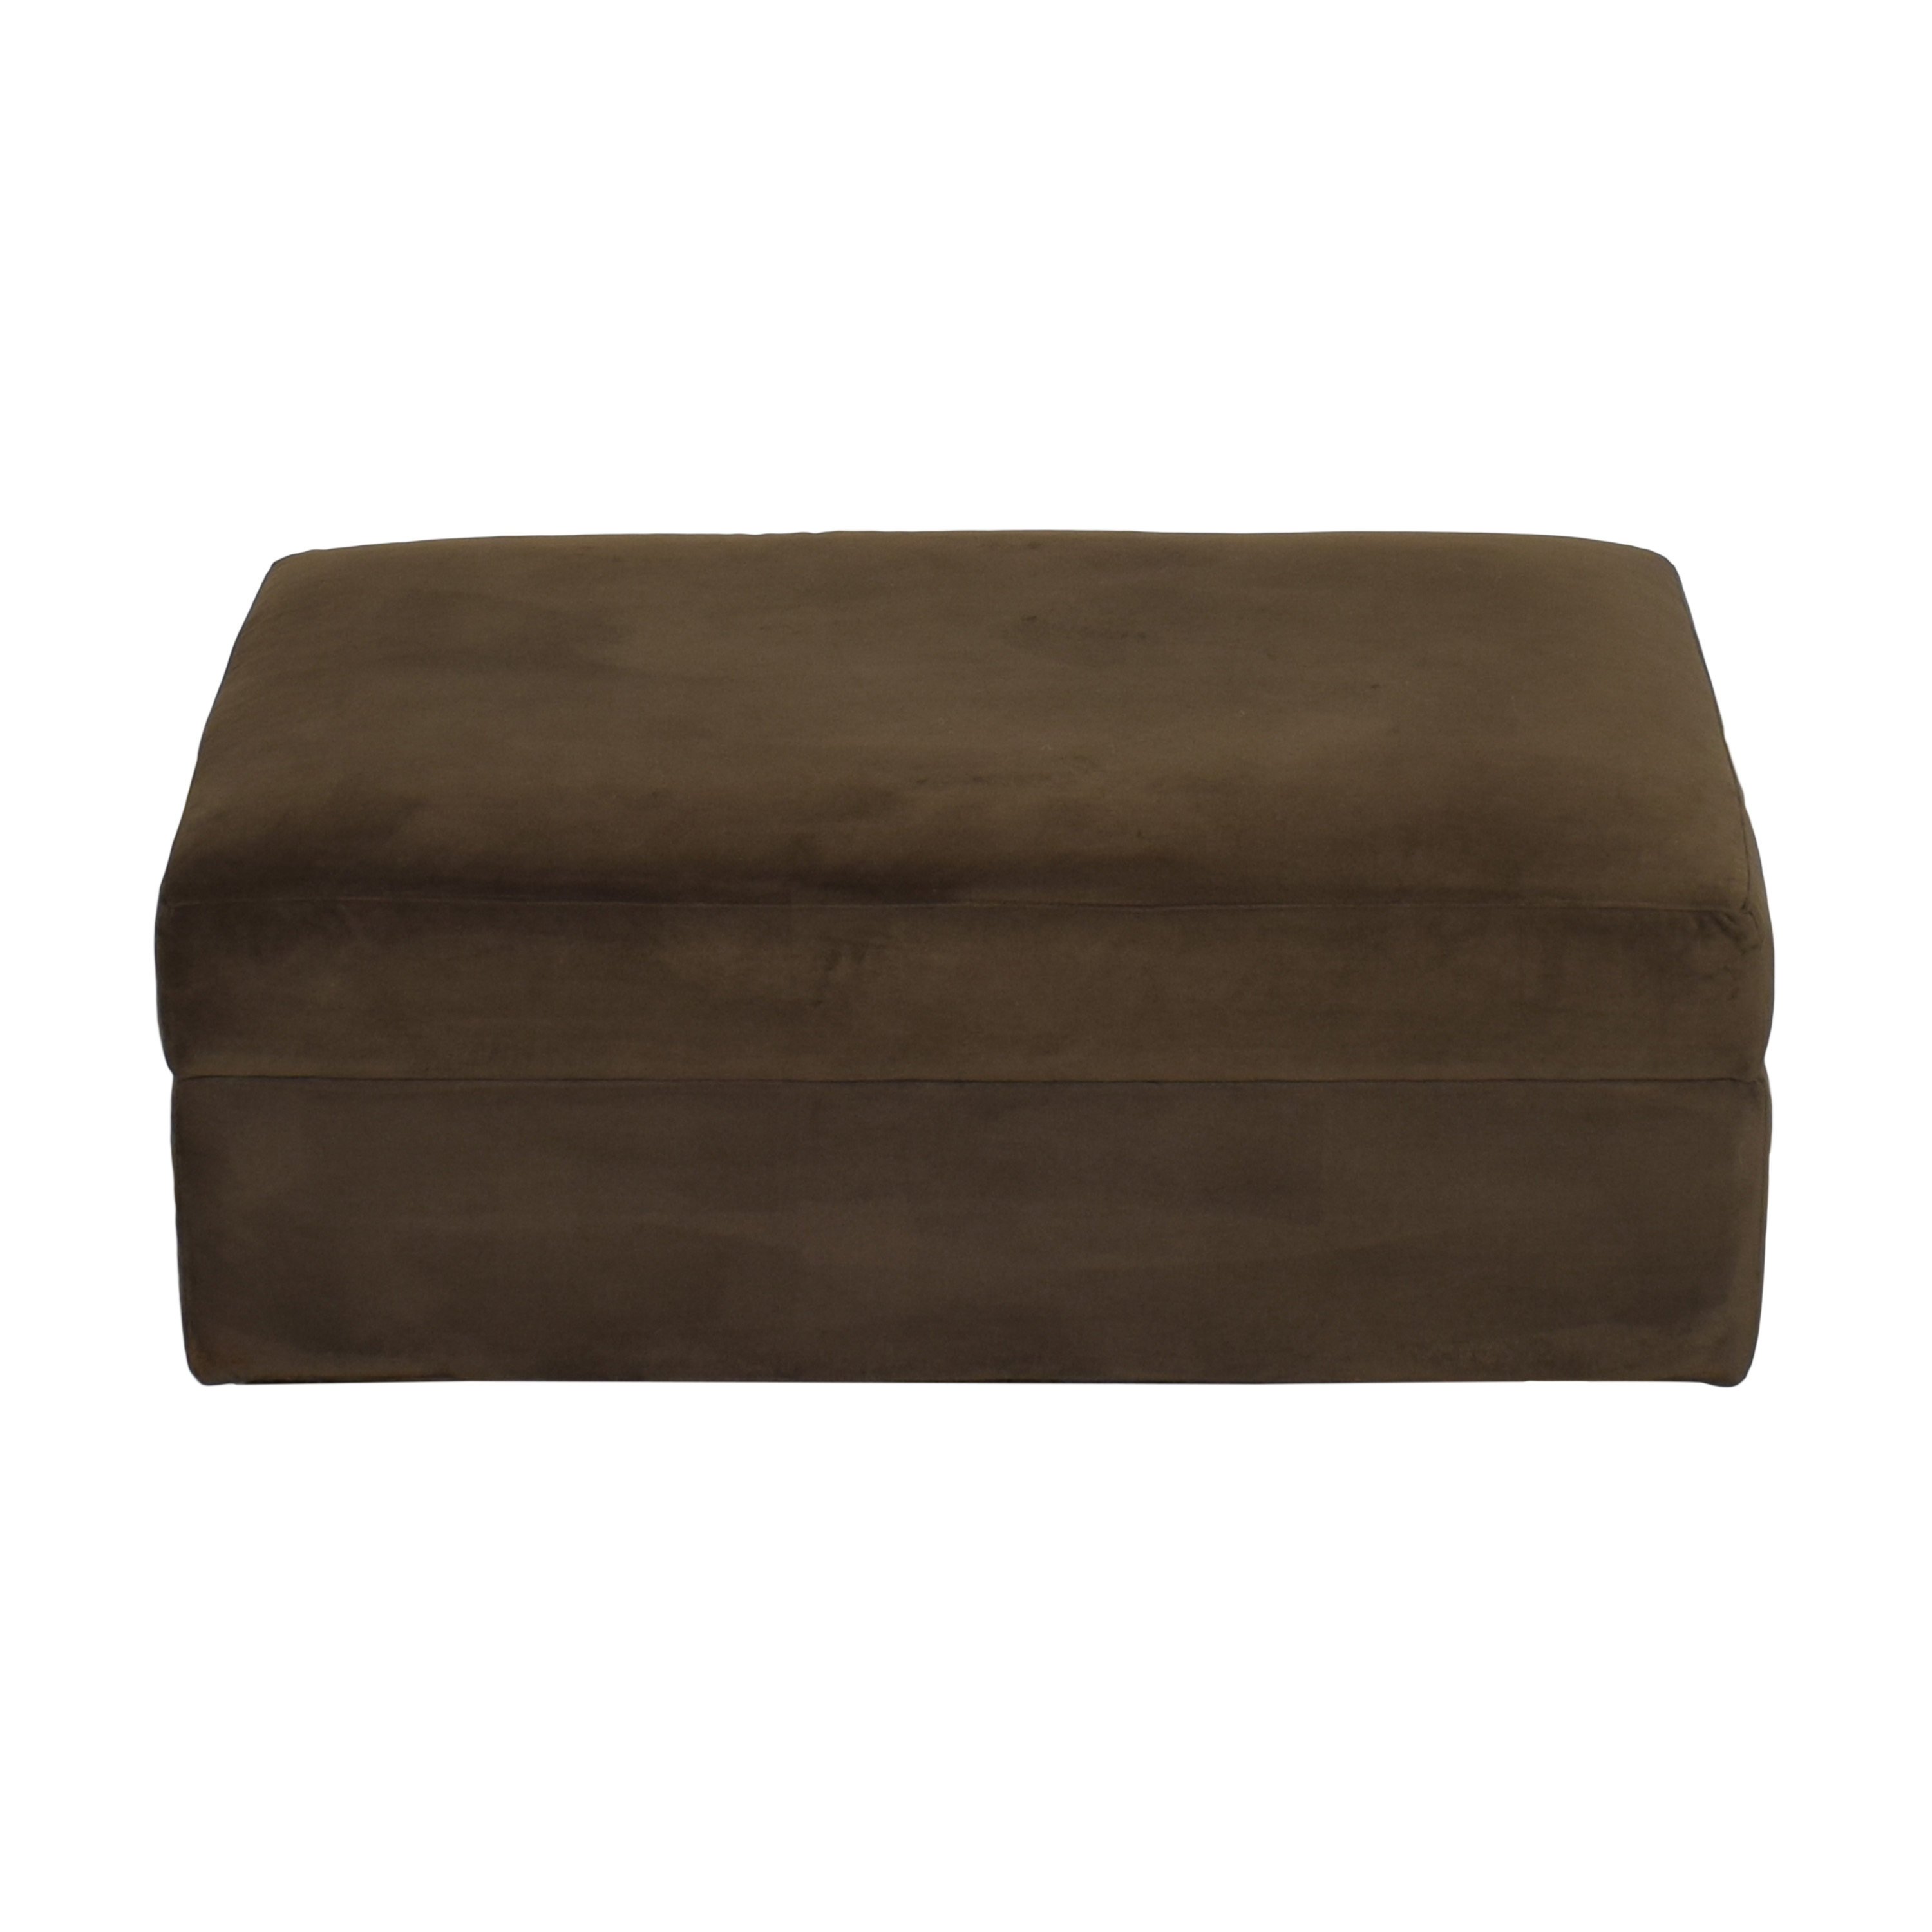 Crate & Barrel Crate & Barrel Lounge II Storage Ottoman with Casters brown